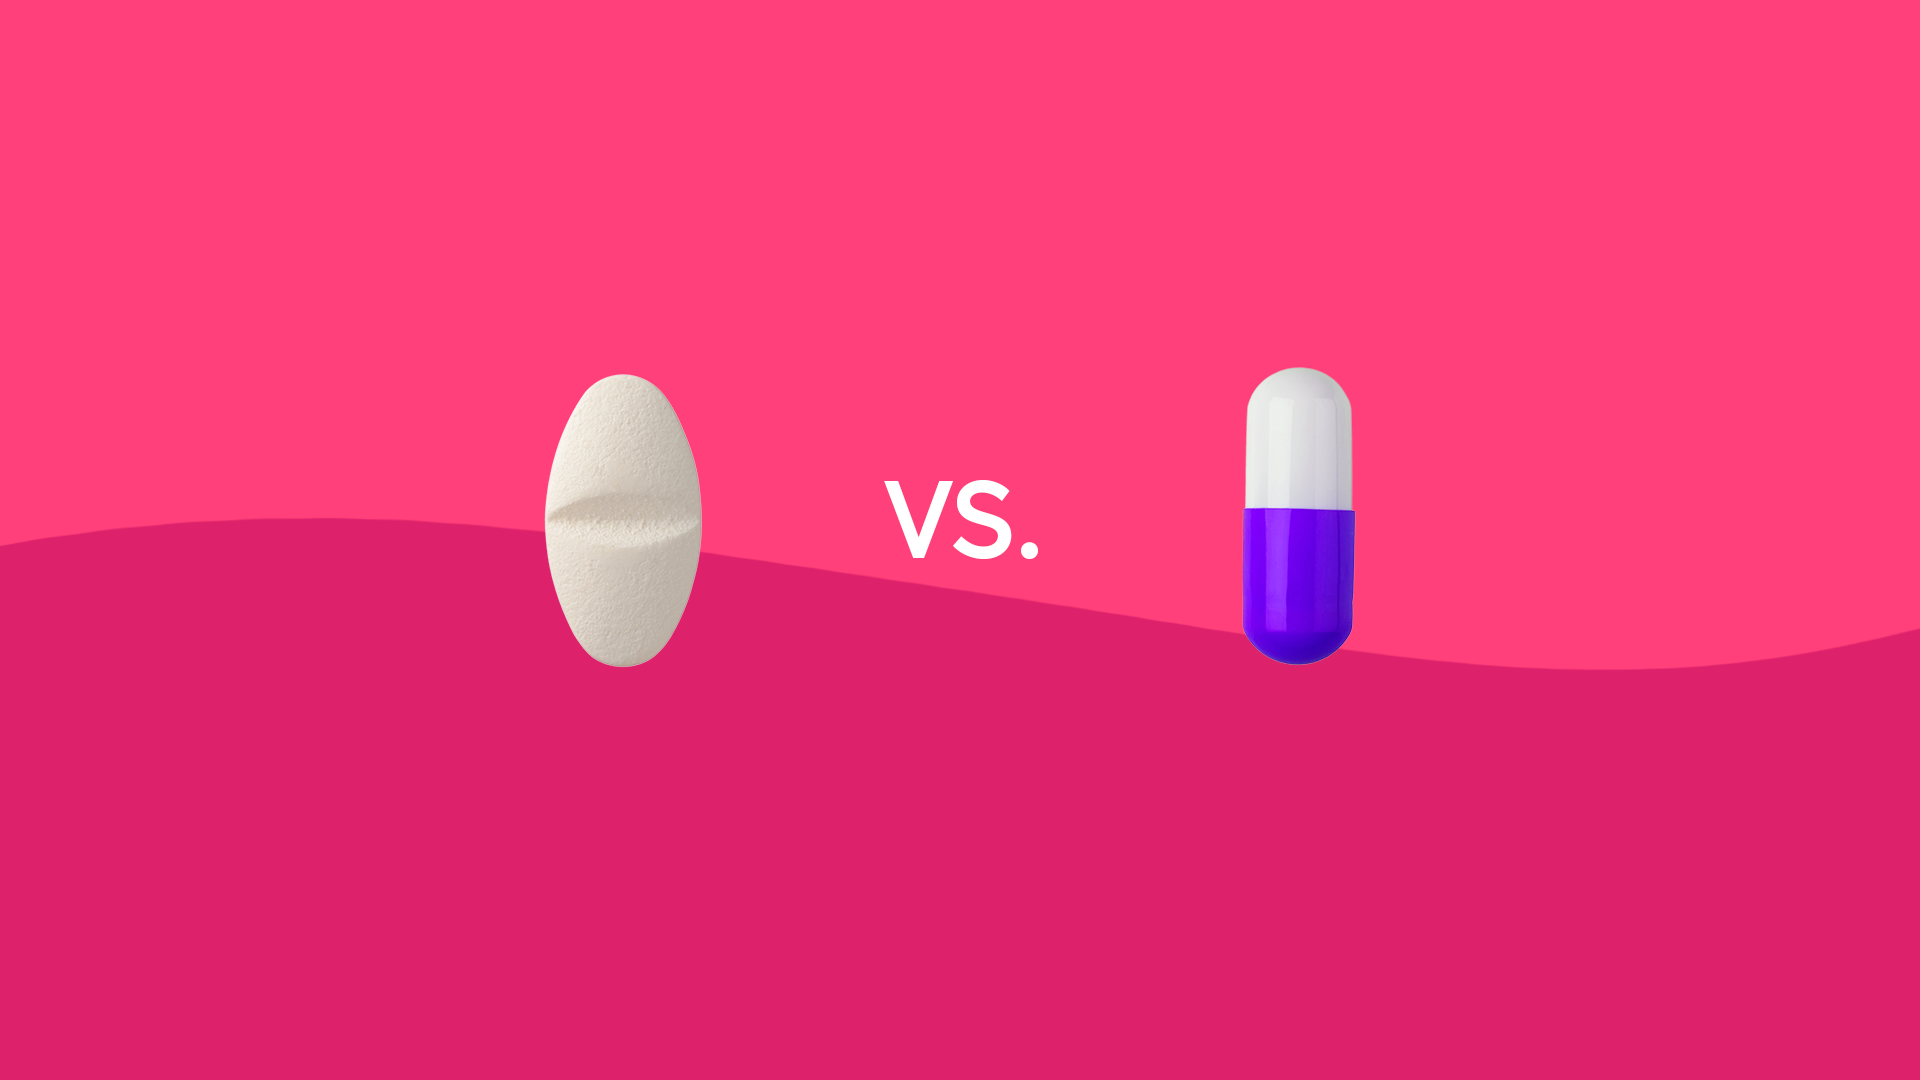 Wellbutrin vs. Prozac: Differences, similarities, and which one is better for you